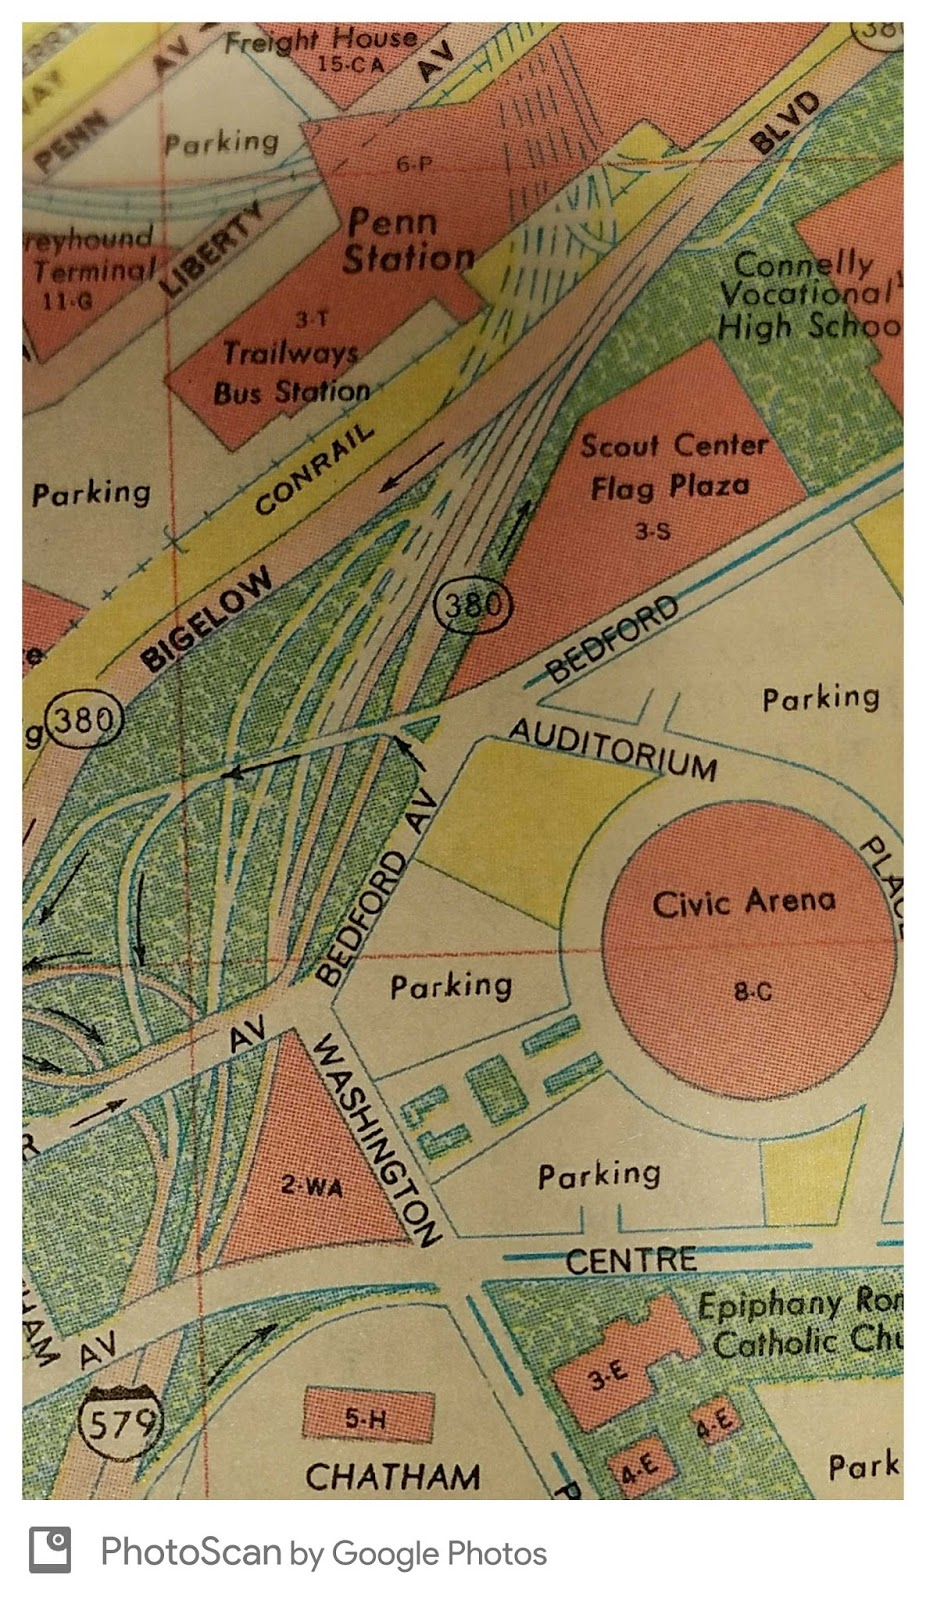 The Bigelow Blvd. / Crosstown Expressway (Interstate 579 ... on map of hwy 301, map of dulles greenway, map of indiana toll road, map of dulles toll road, map of suncoast parkway,